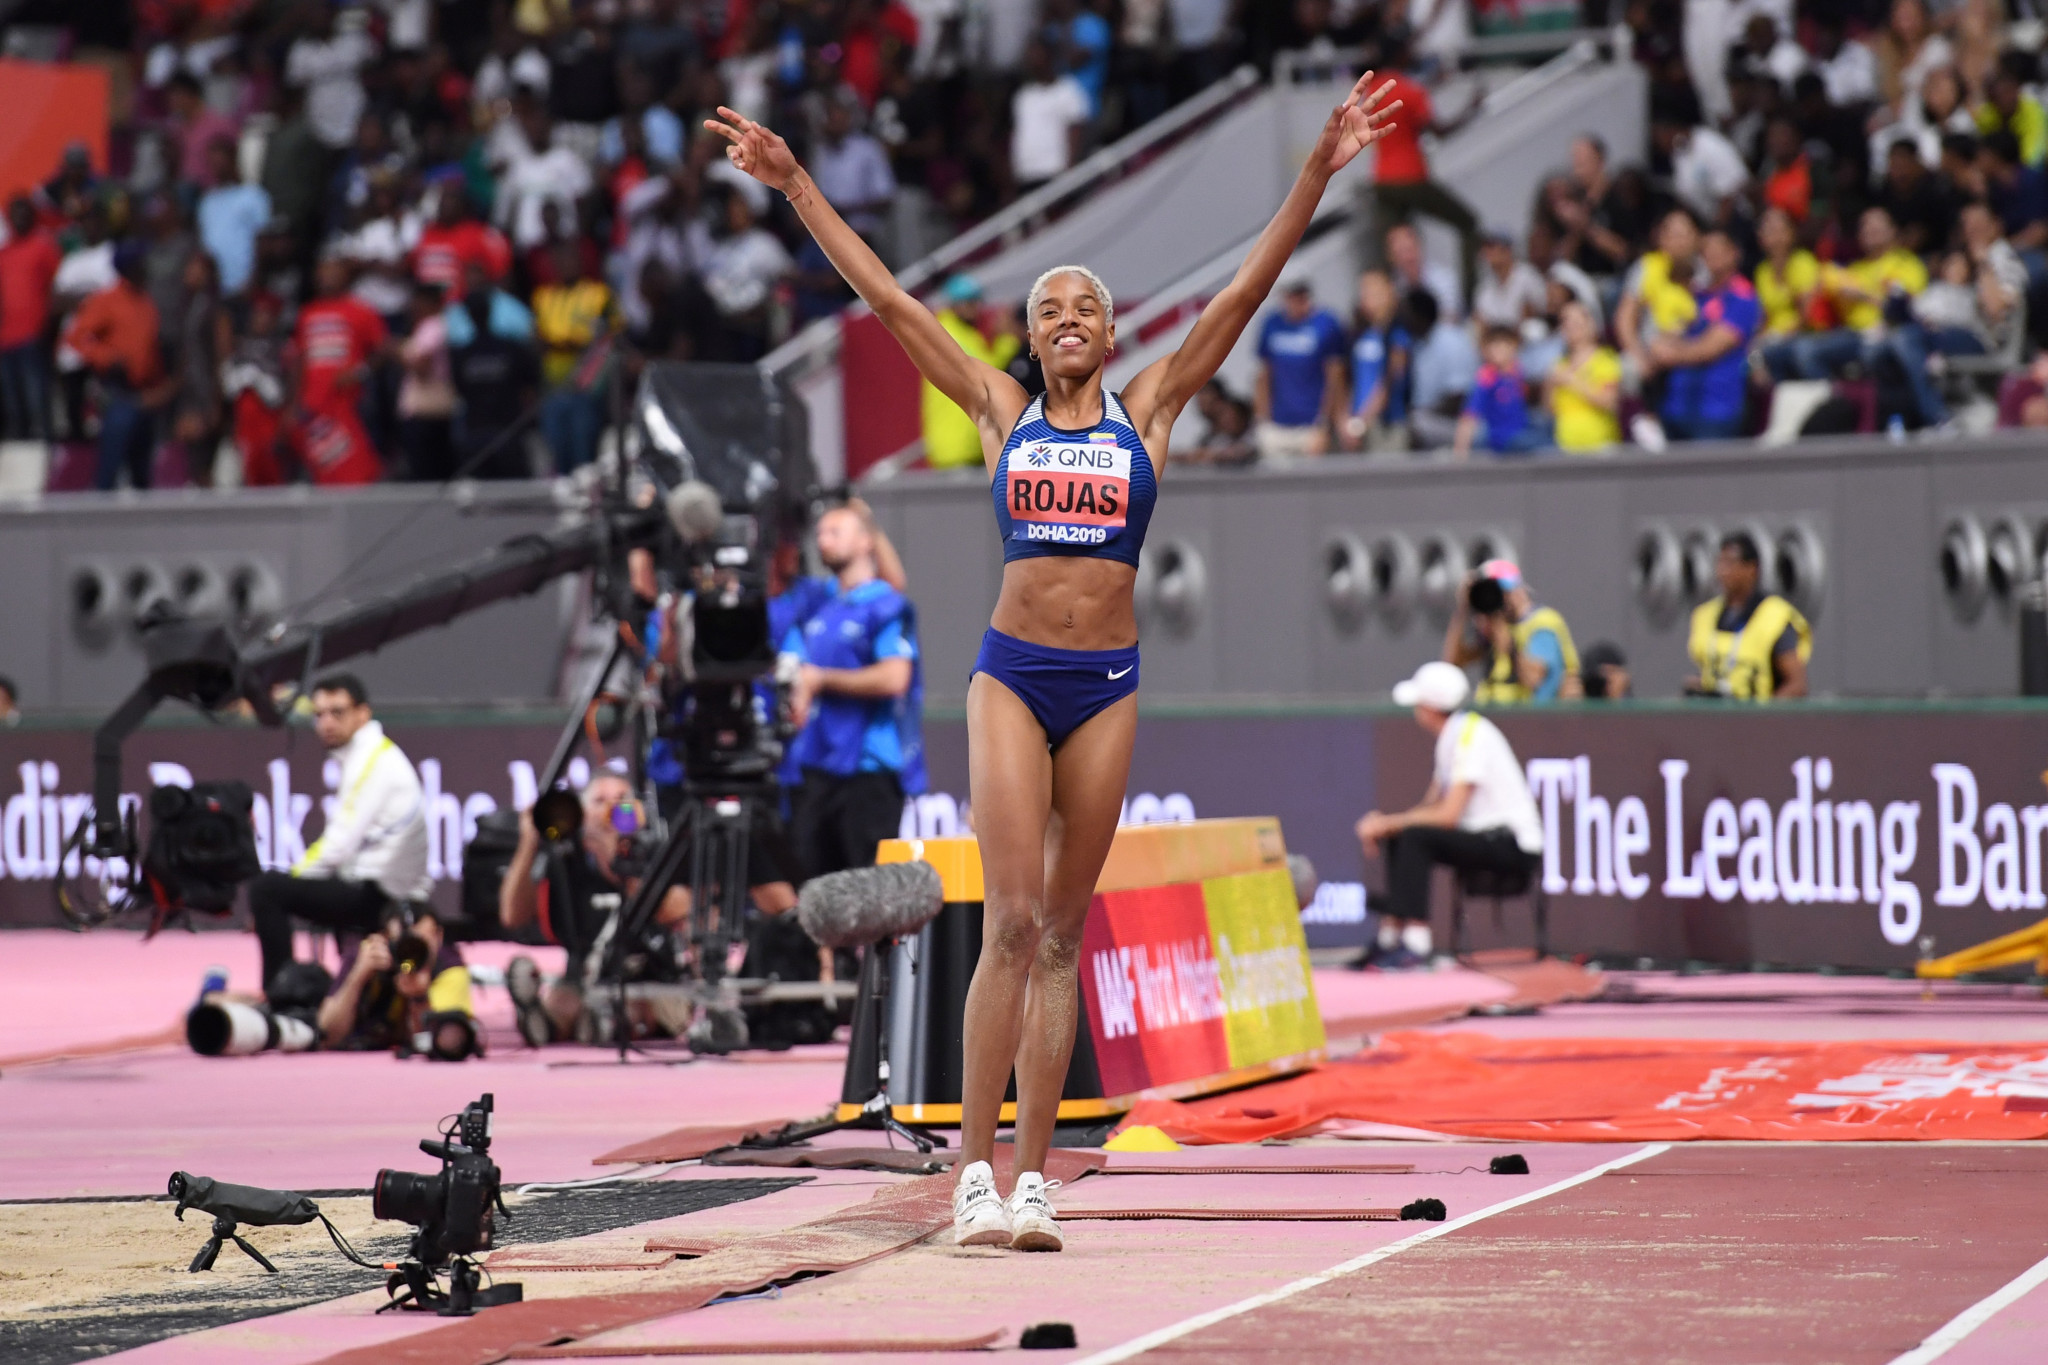 Venezuela's Yulimar Rojas celebrates winning the gold medal in the women's triple jump ©Getty Images